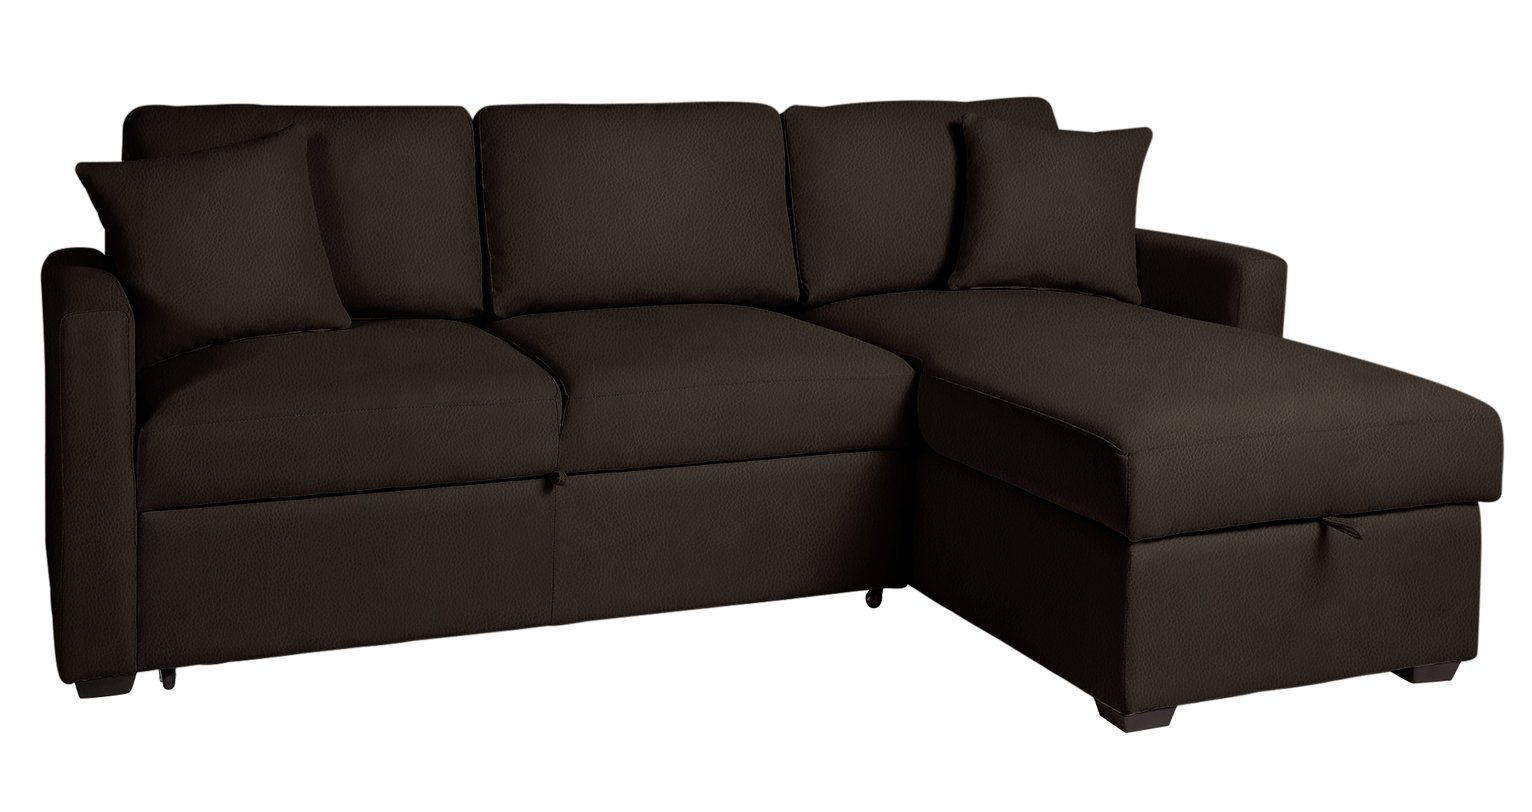 argos small corner sofa bed circular sectional canada sale on home reagan leather eff right